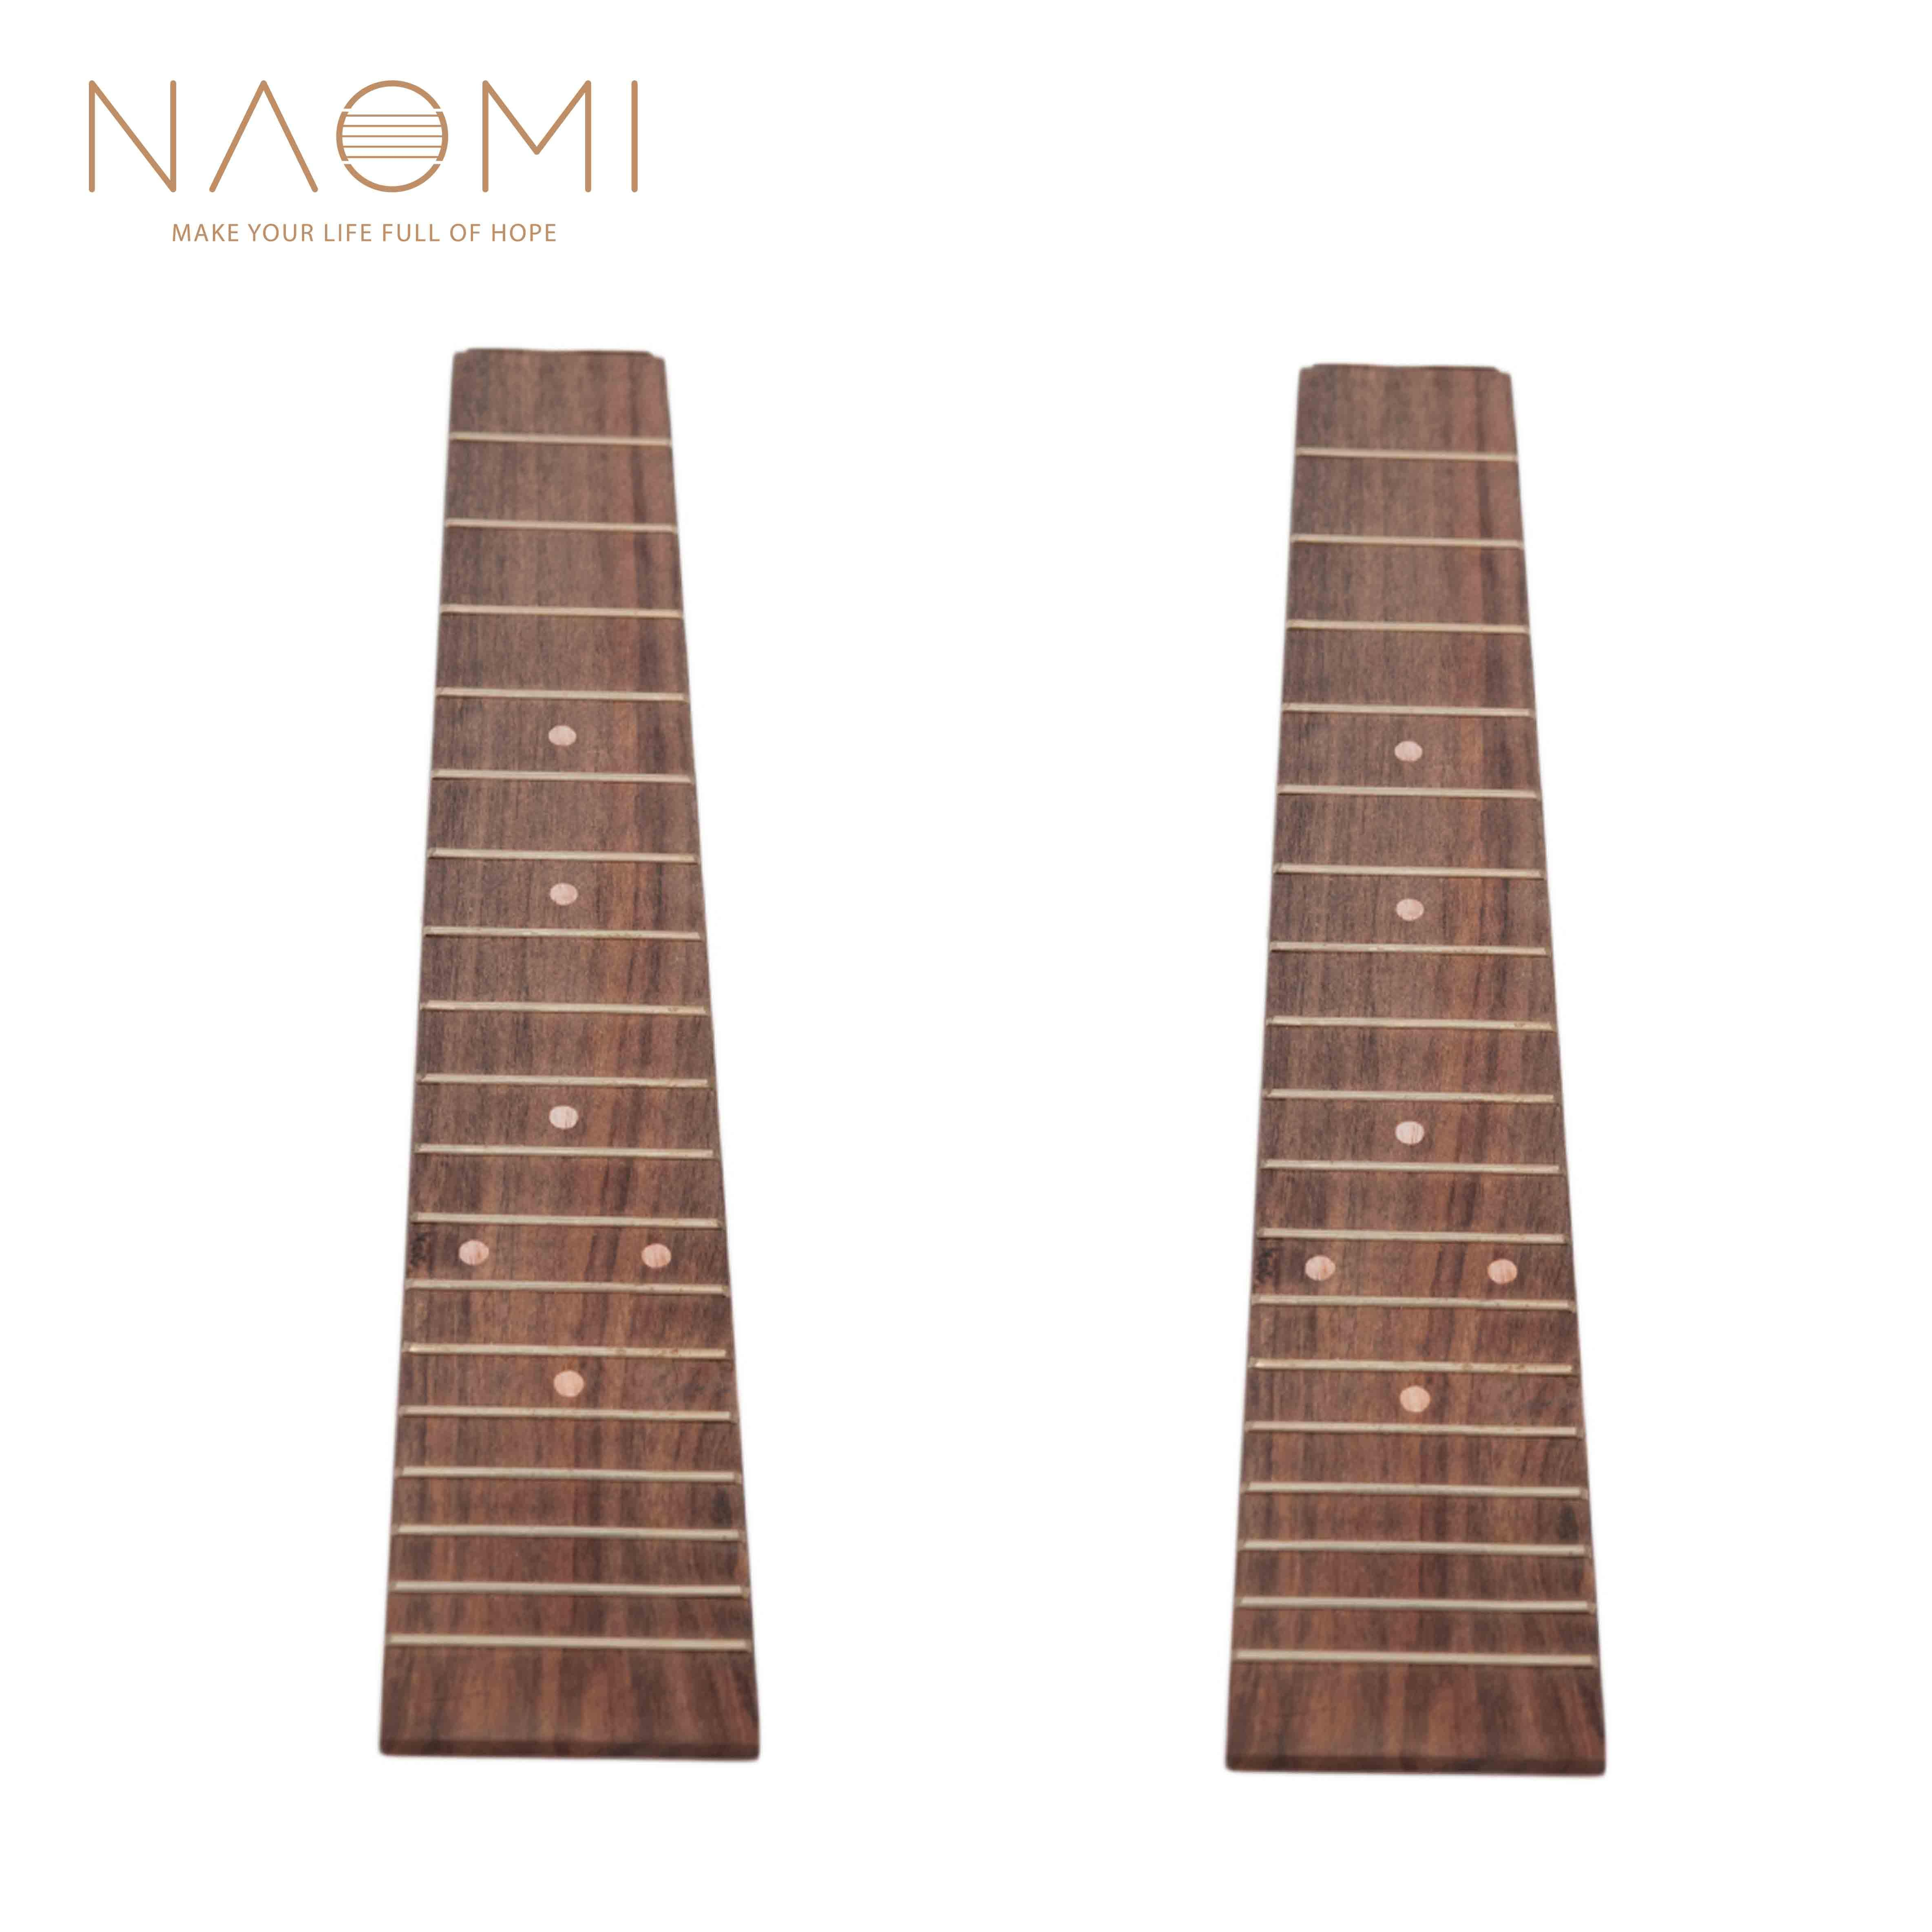 26 Inch Tenor Ukulele Hawaiian Guitar Rosewood Wood Fretboard Fingerboard 18 Frets Wide Selection; Musical Instruments Guitar Parts & Accessories